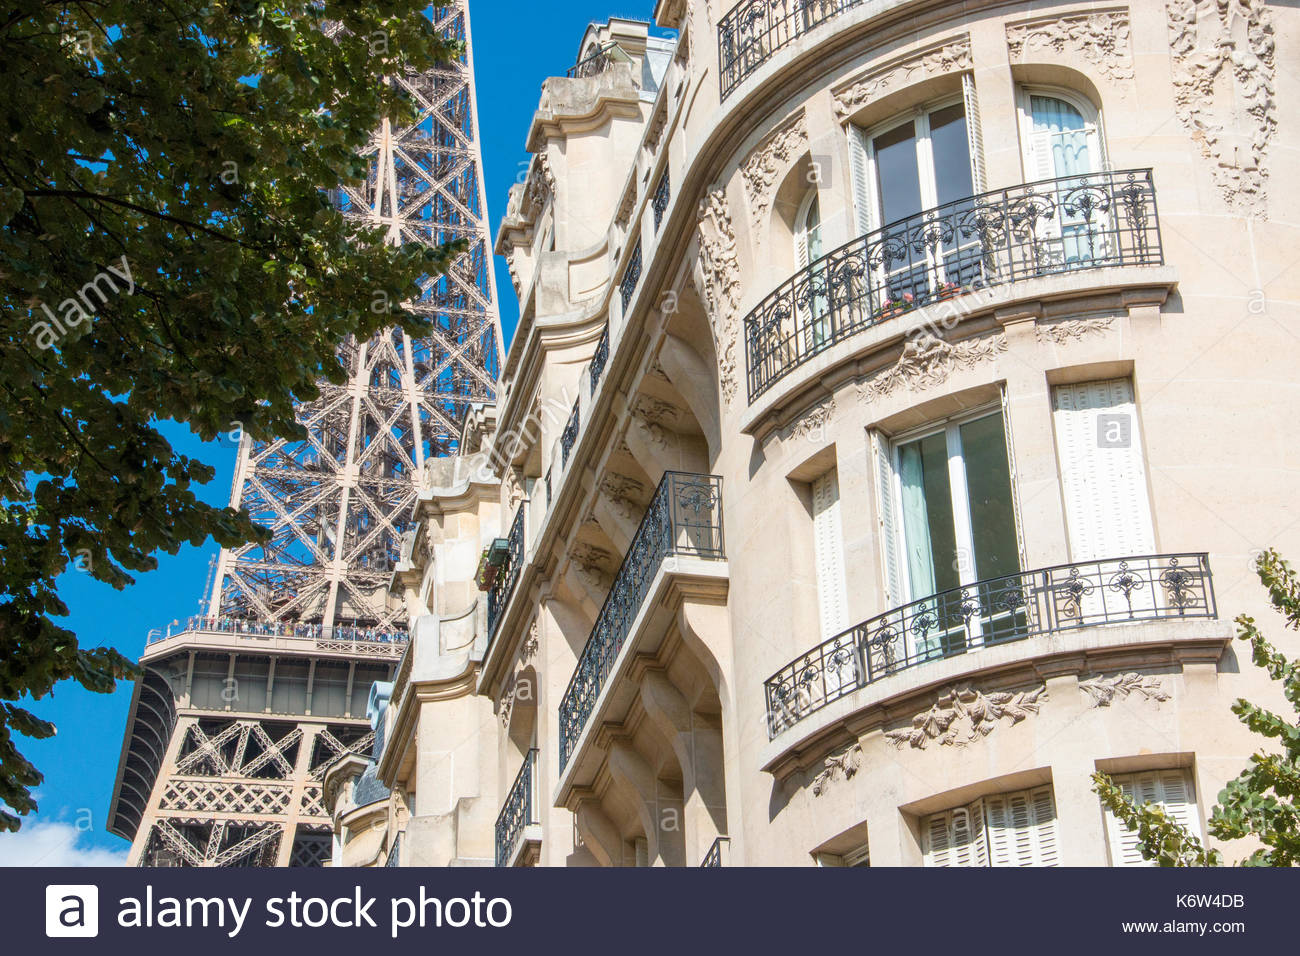 Eiffel tower, behind a Haussmann style building in Paris. - Stock Image